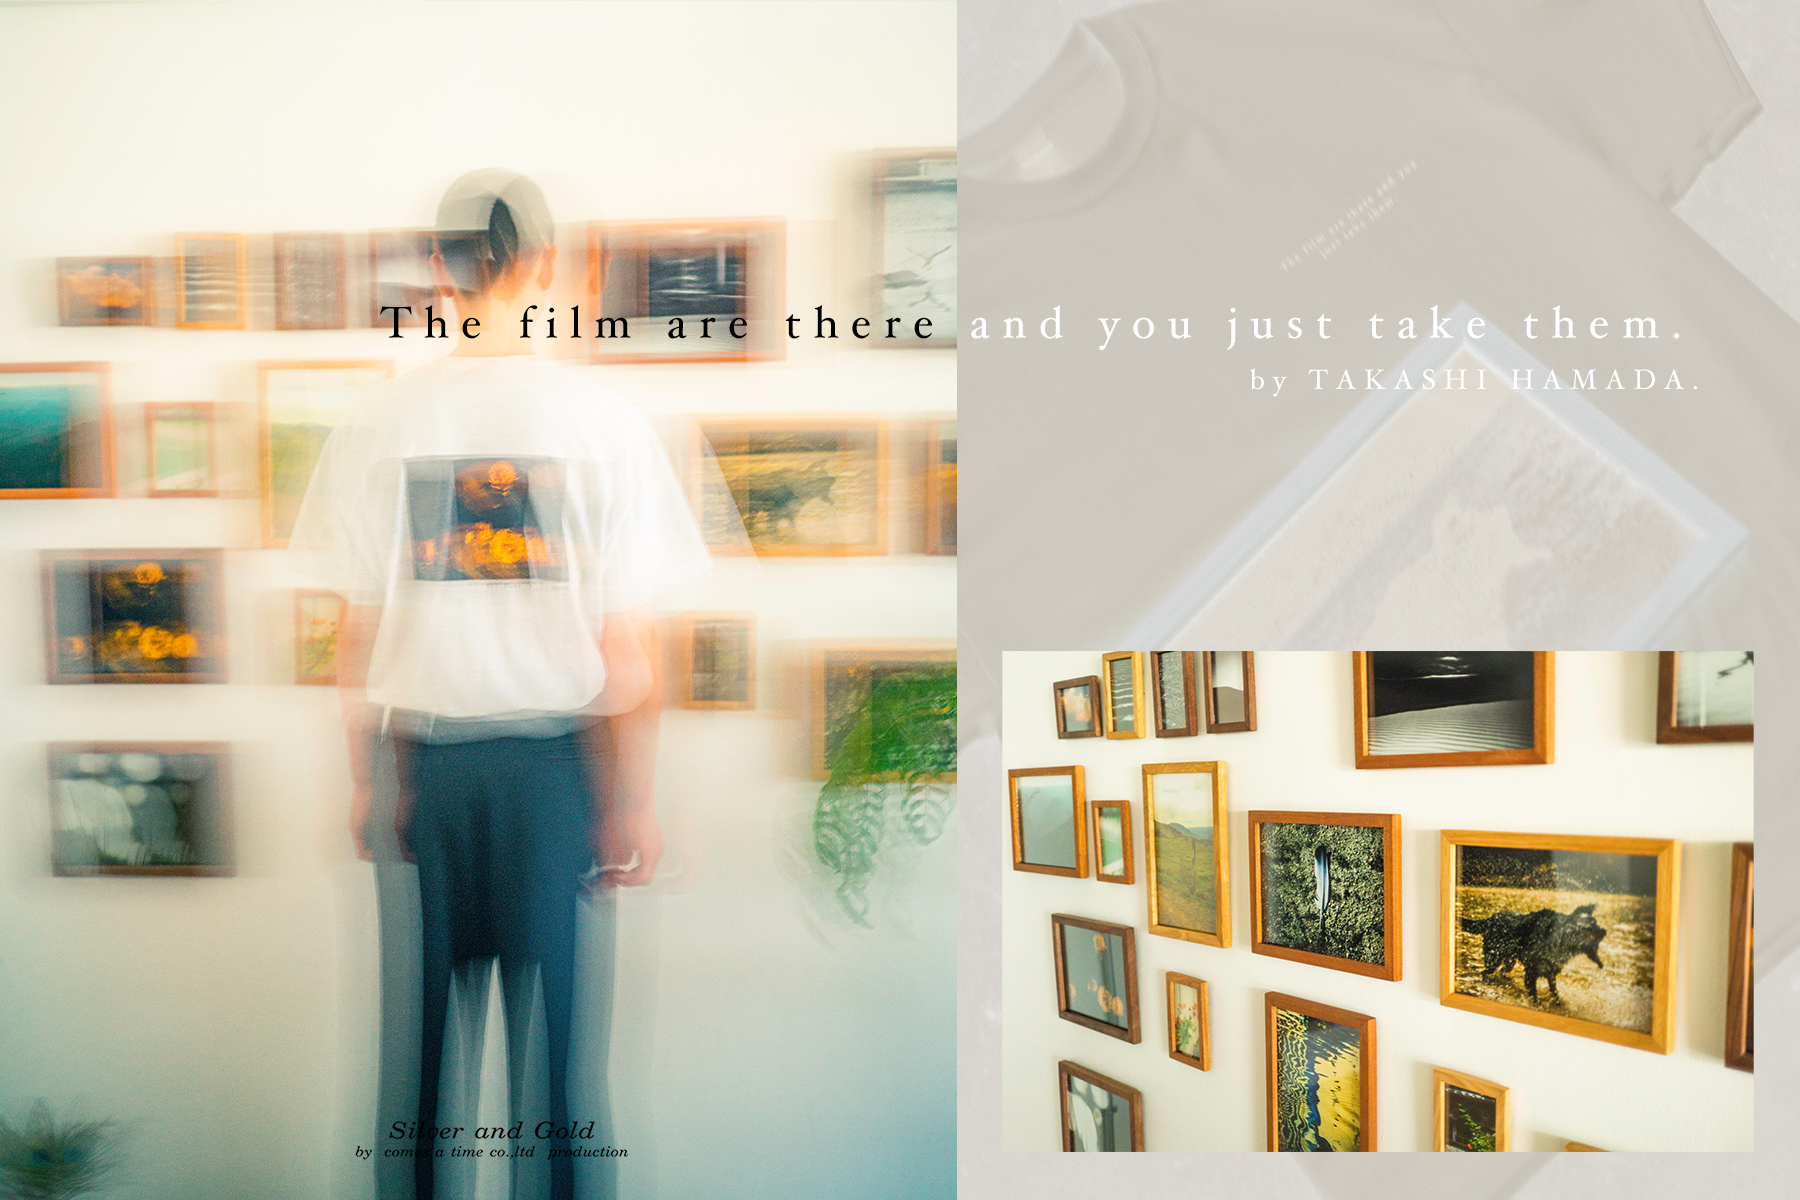 The film are there and you just take them. by TAKASHI HAMADA.